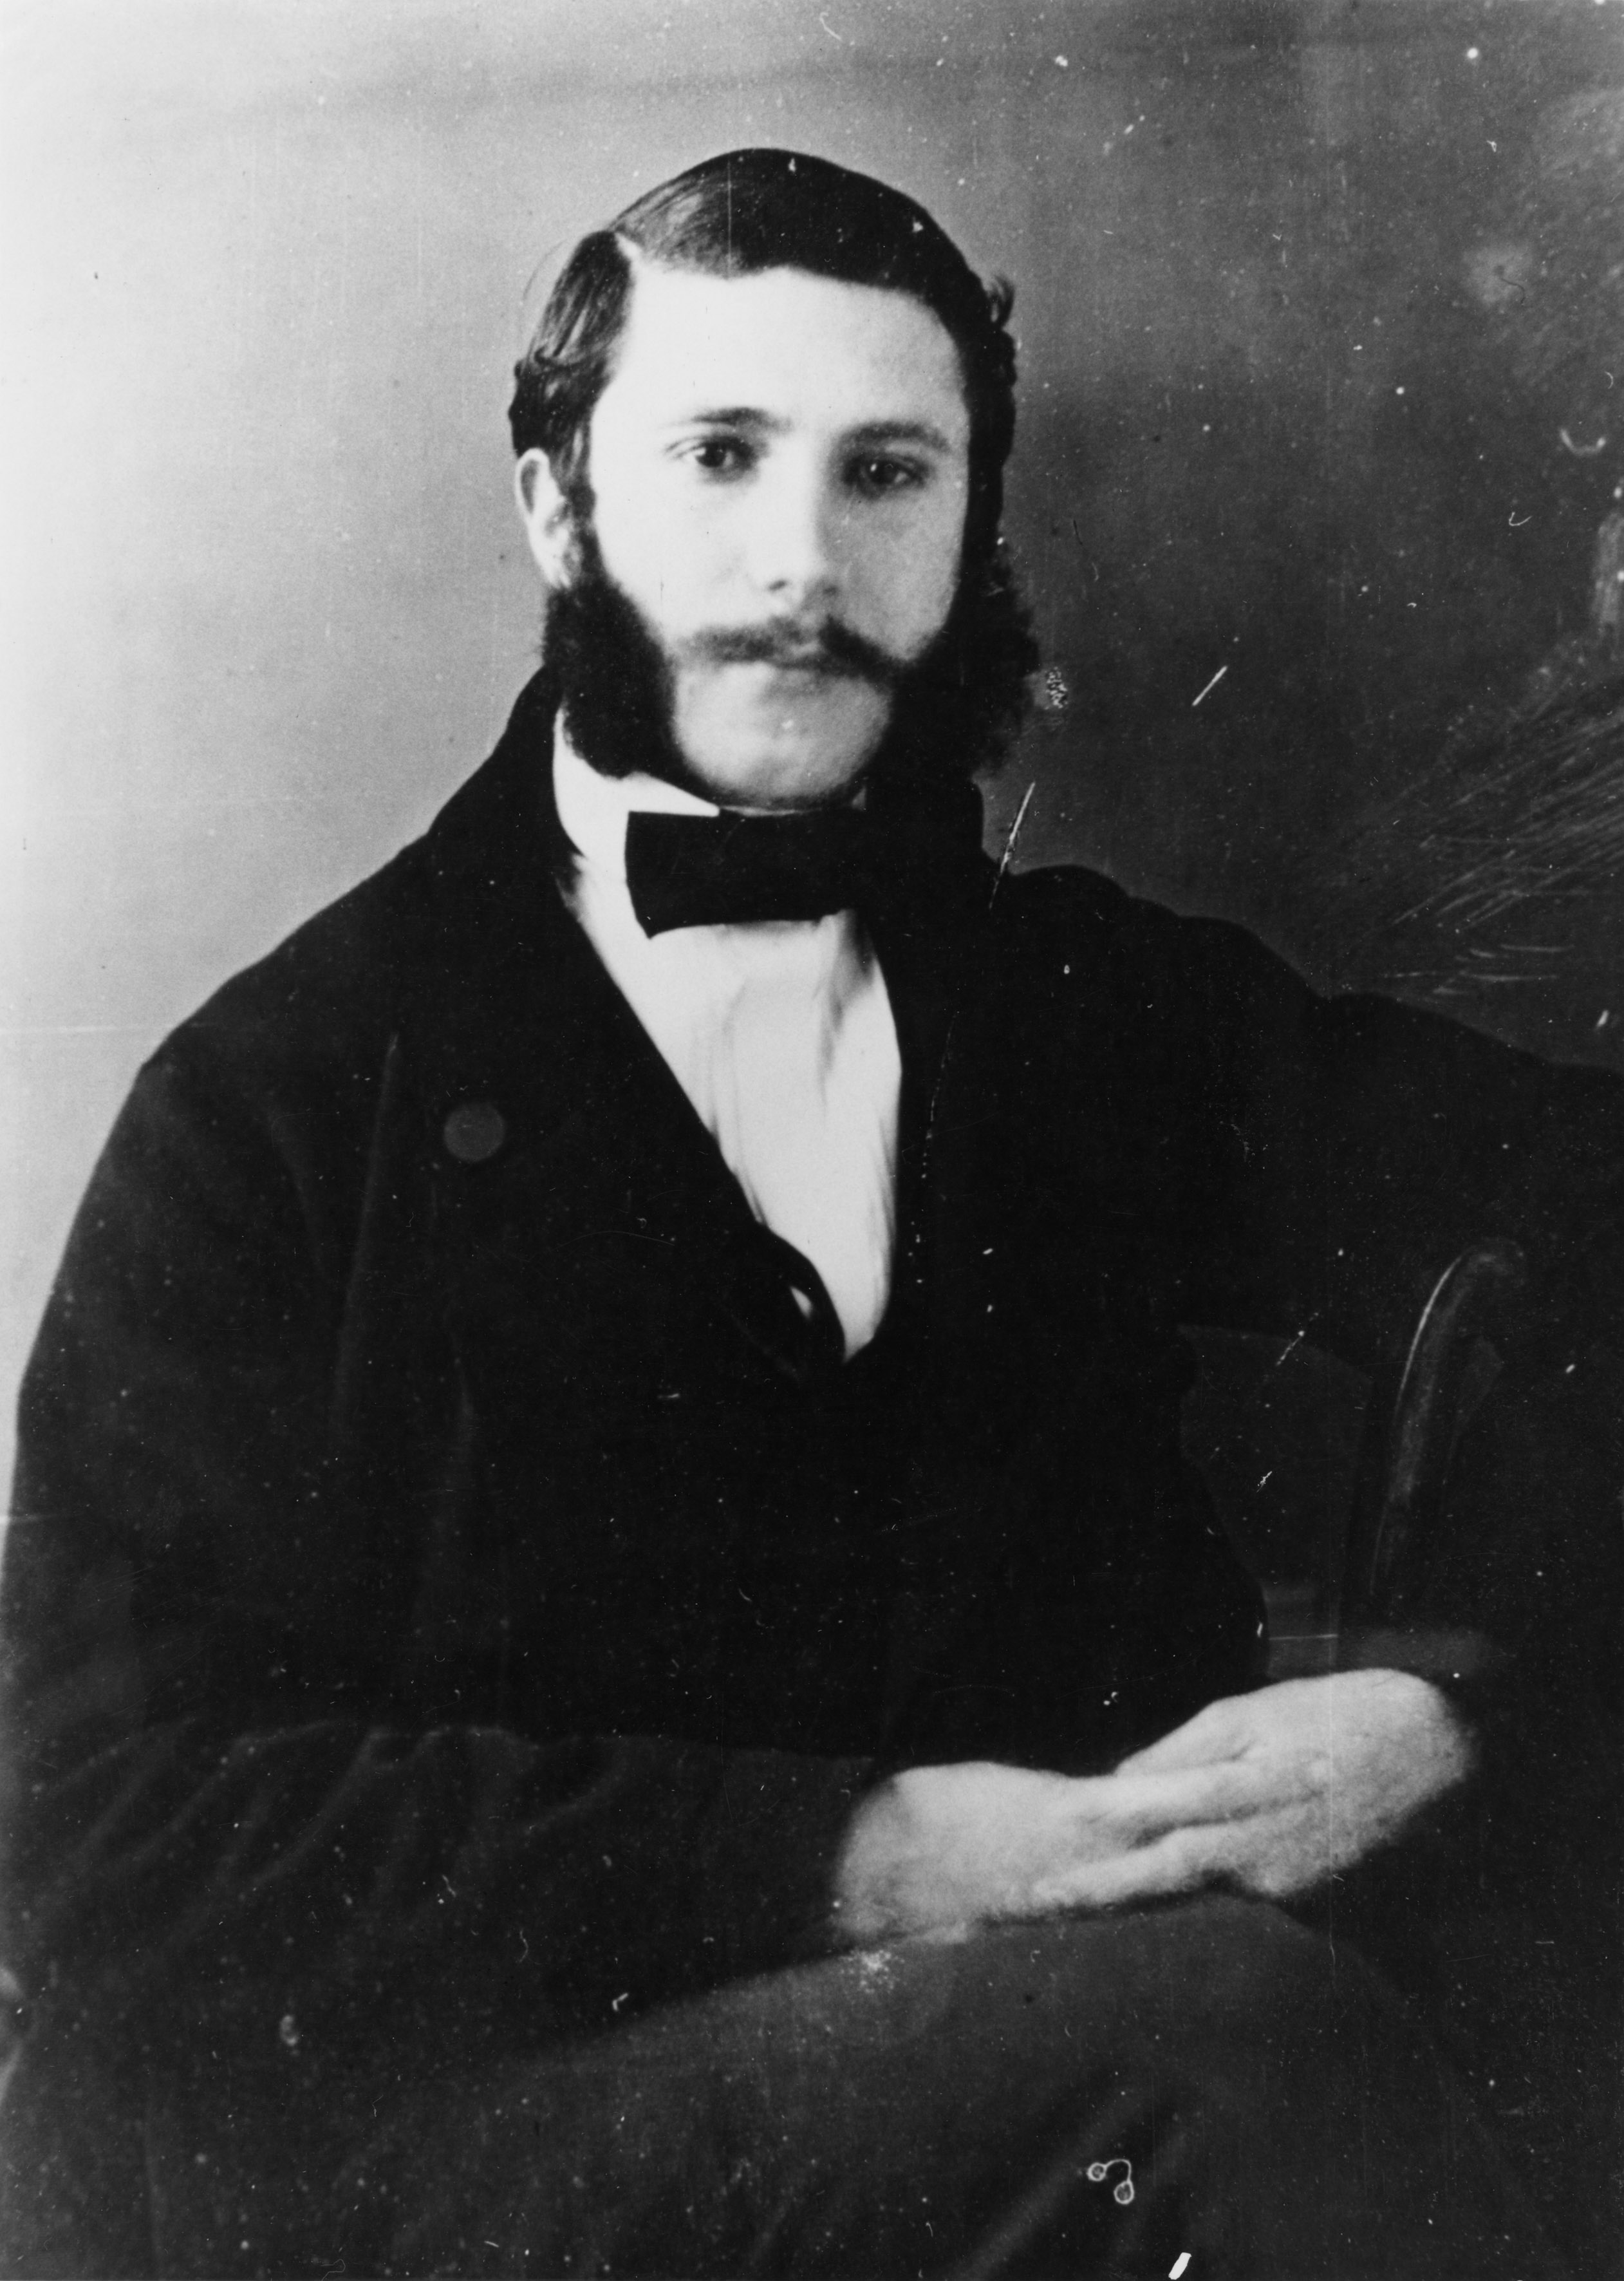 jean henri dunant Dunant was born in geneva, switzerland, the first son of businessman jean- jacques dunant and antoinette dunant-colladon his family was devoutly  calvinist.